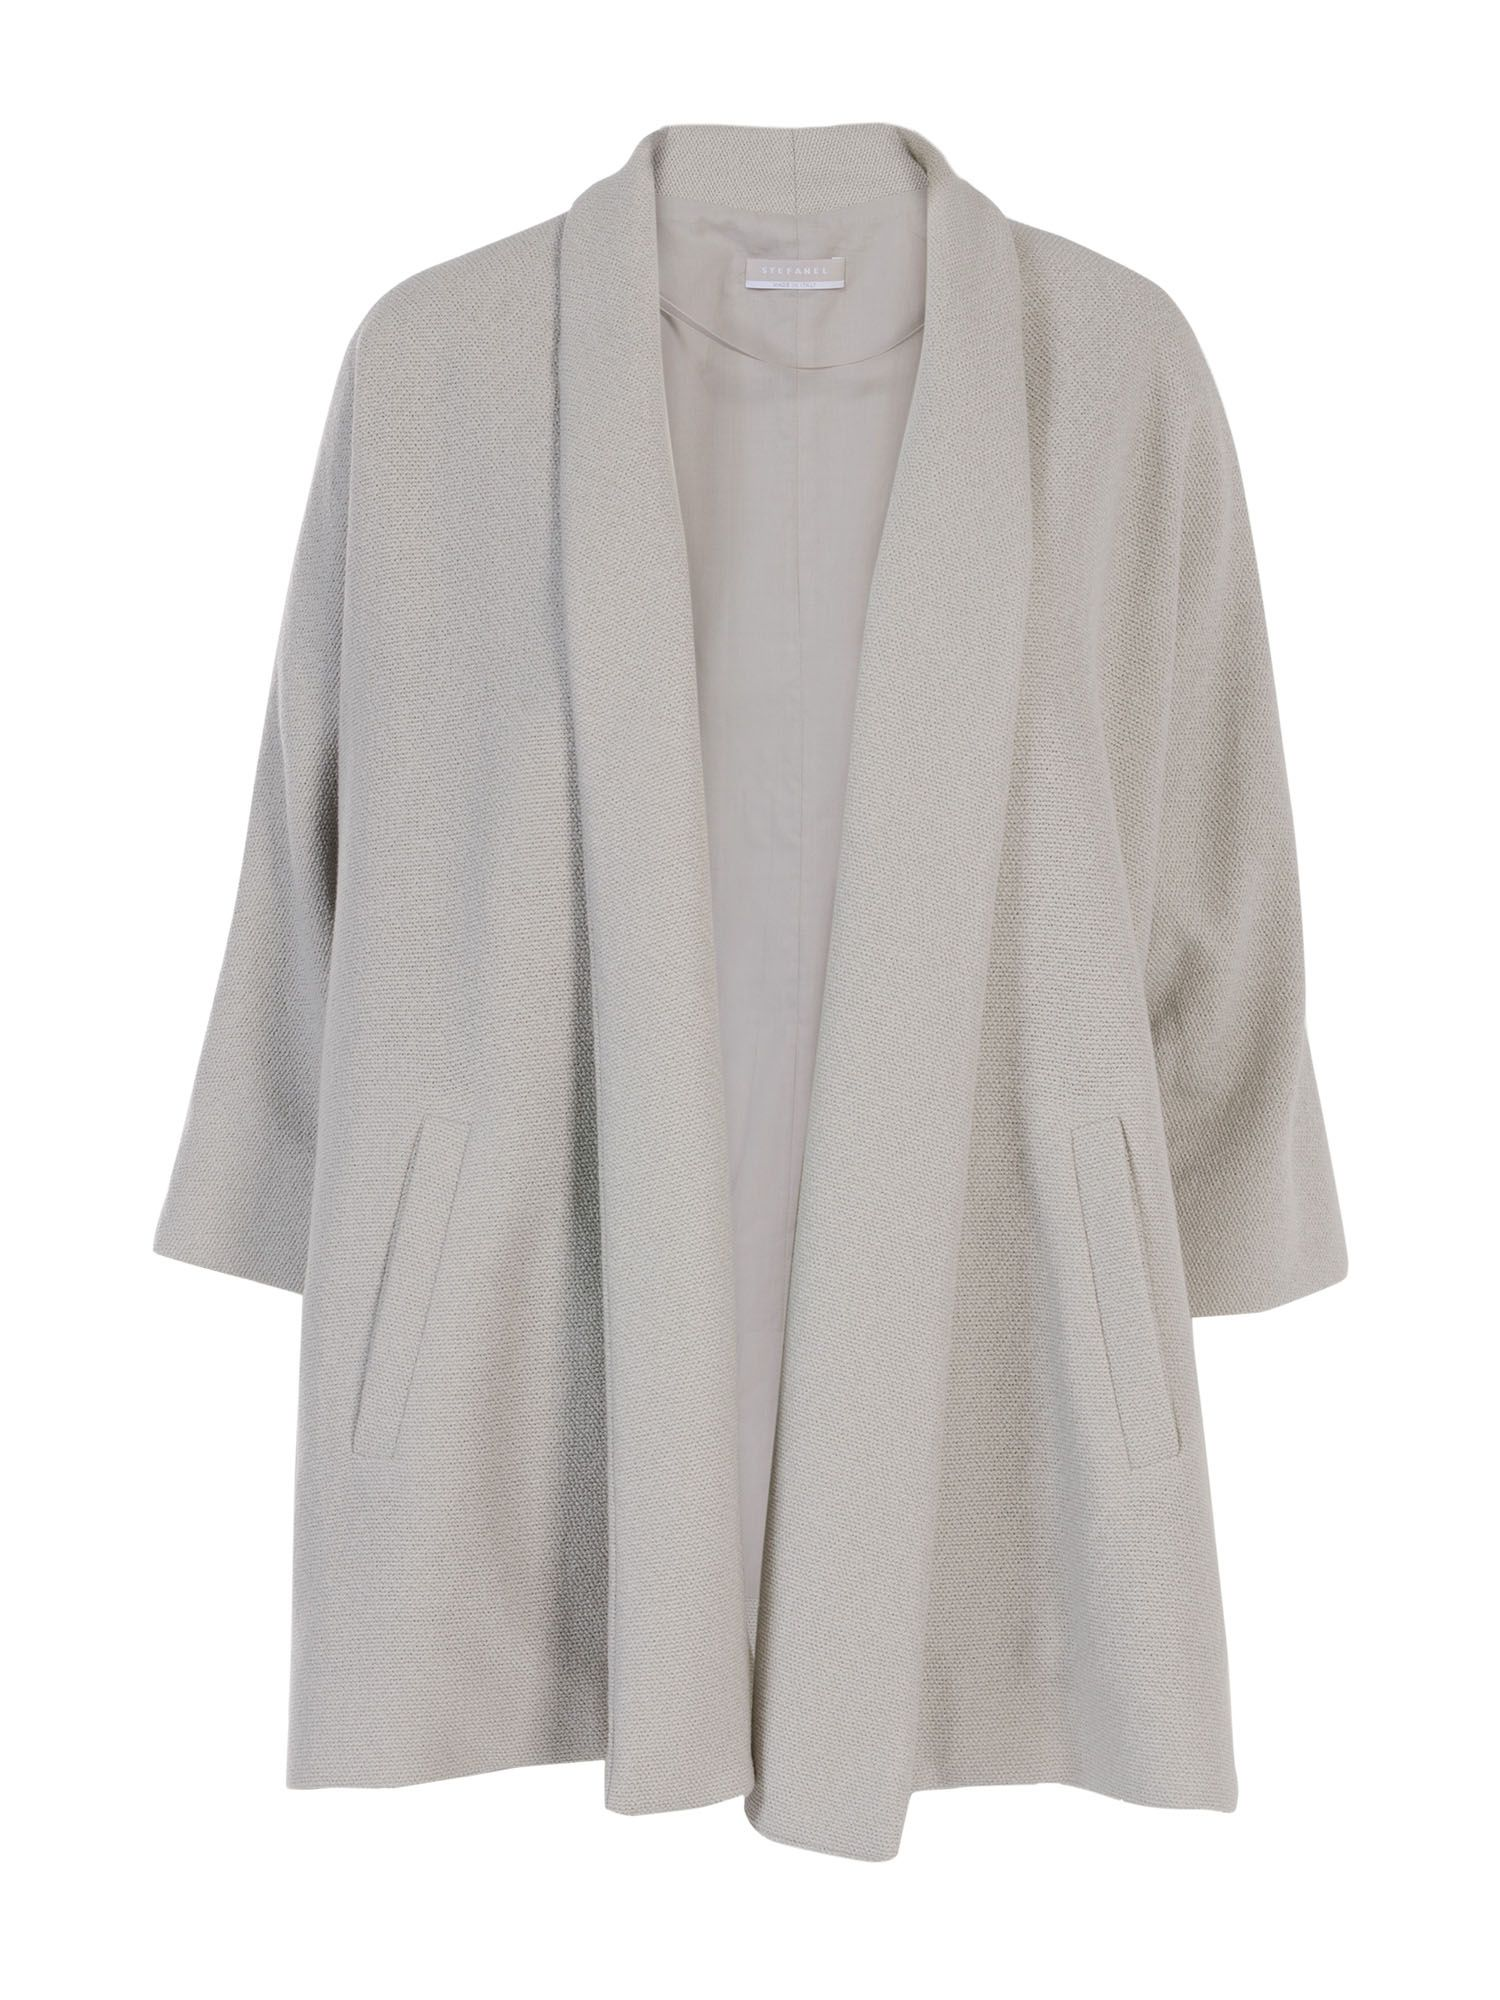 Stefanel Open Jacket With Revers, Grey